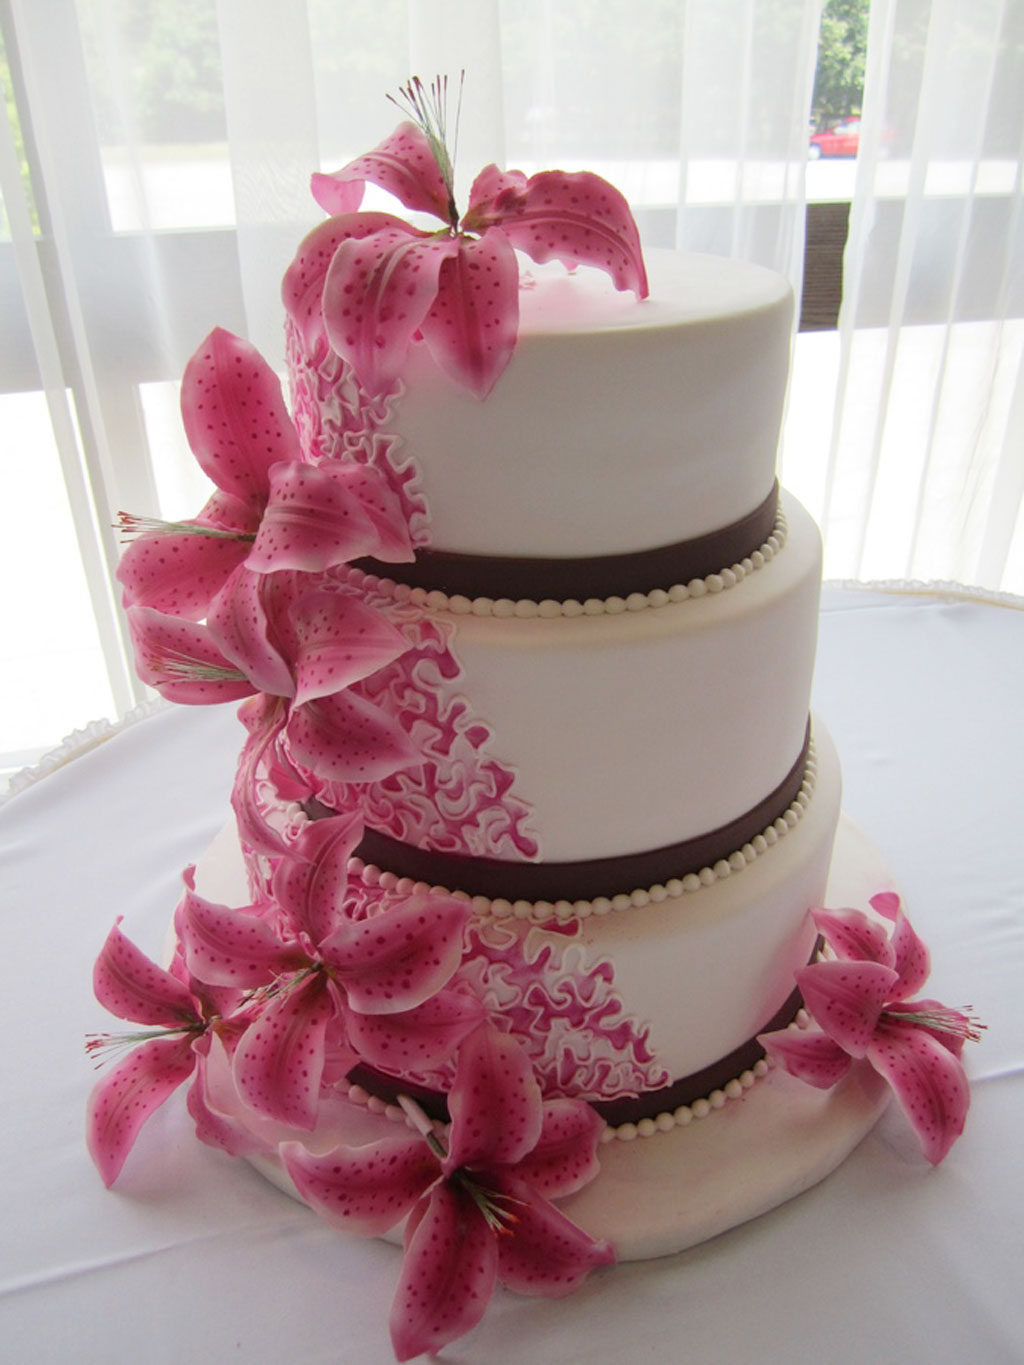 www wedding cakes pictures com 2 pink stargazer lilies wedding cakes wedding cake cake 27672